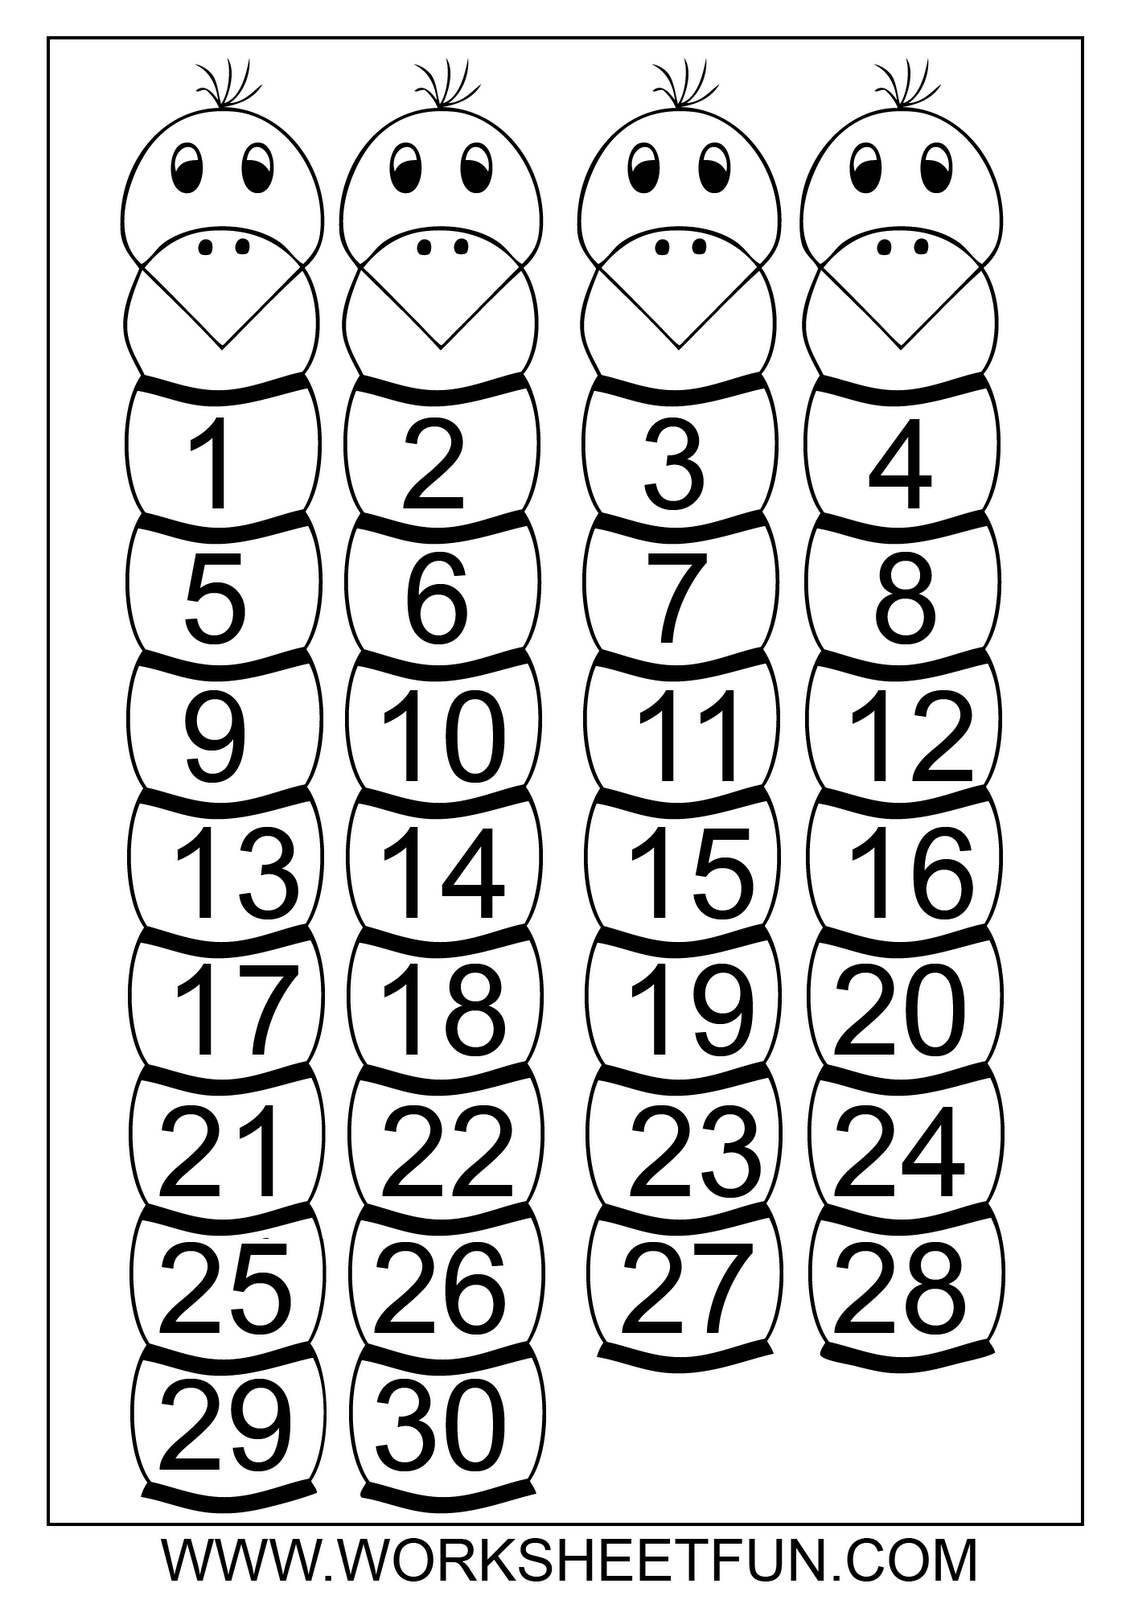 10 Best Images Of Counting Worksheets 1 30